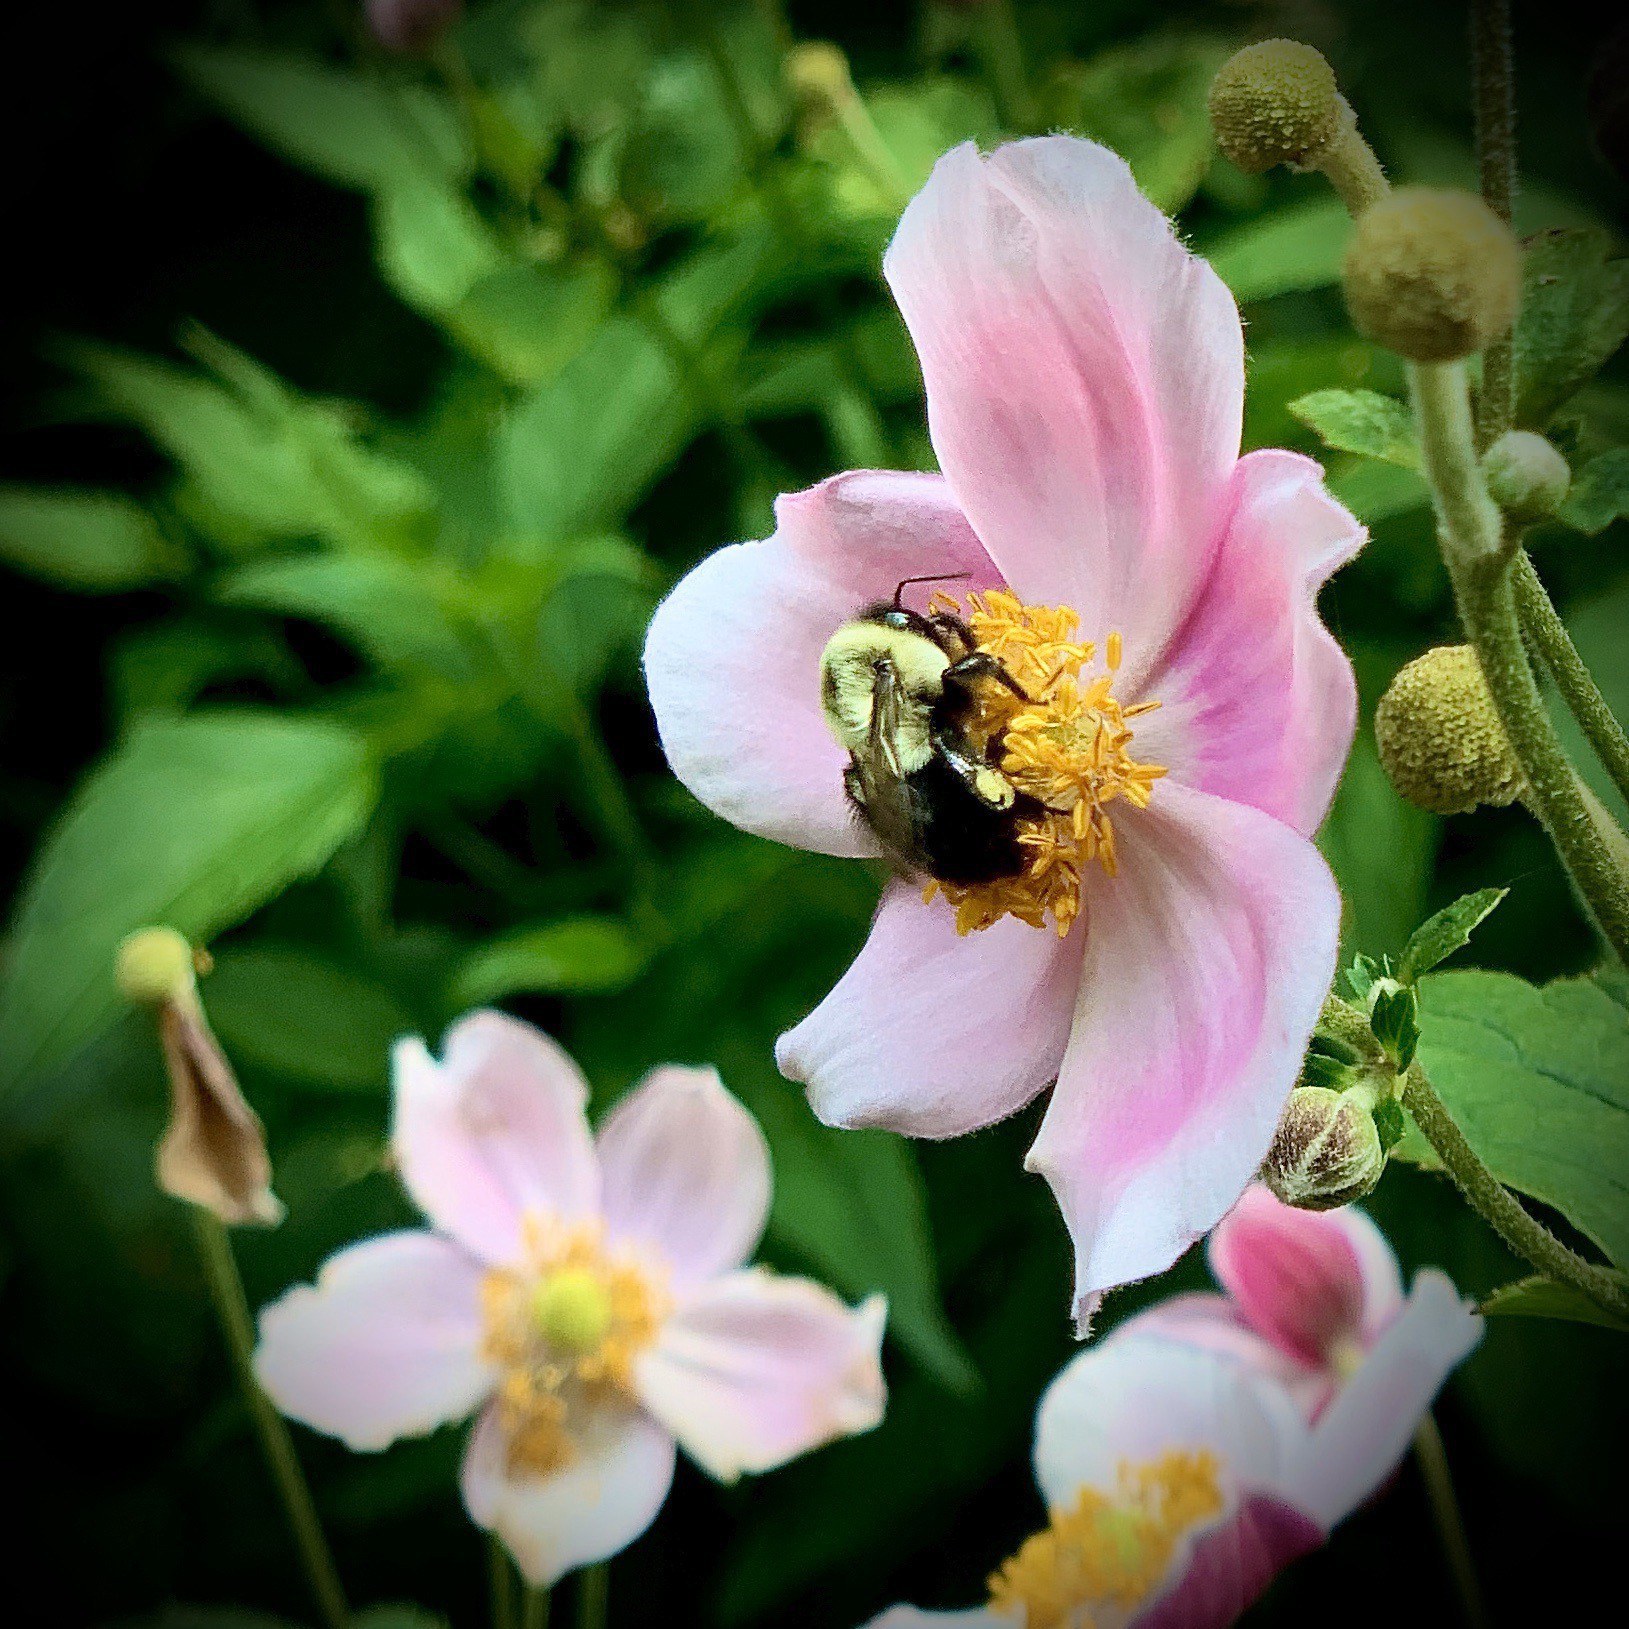 Closeup of a bee pollenating a flower.